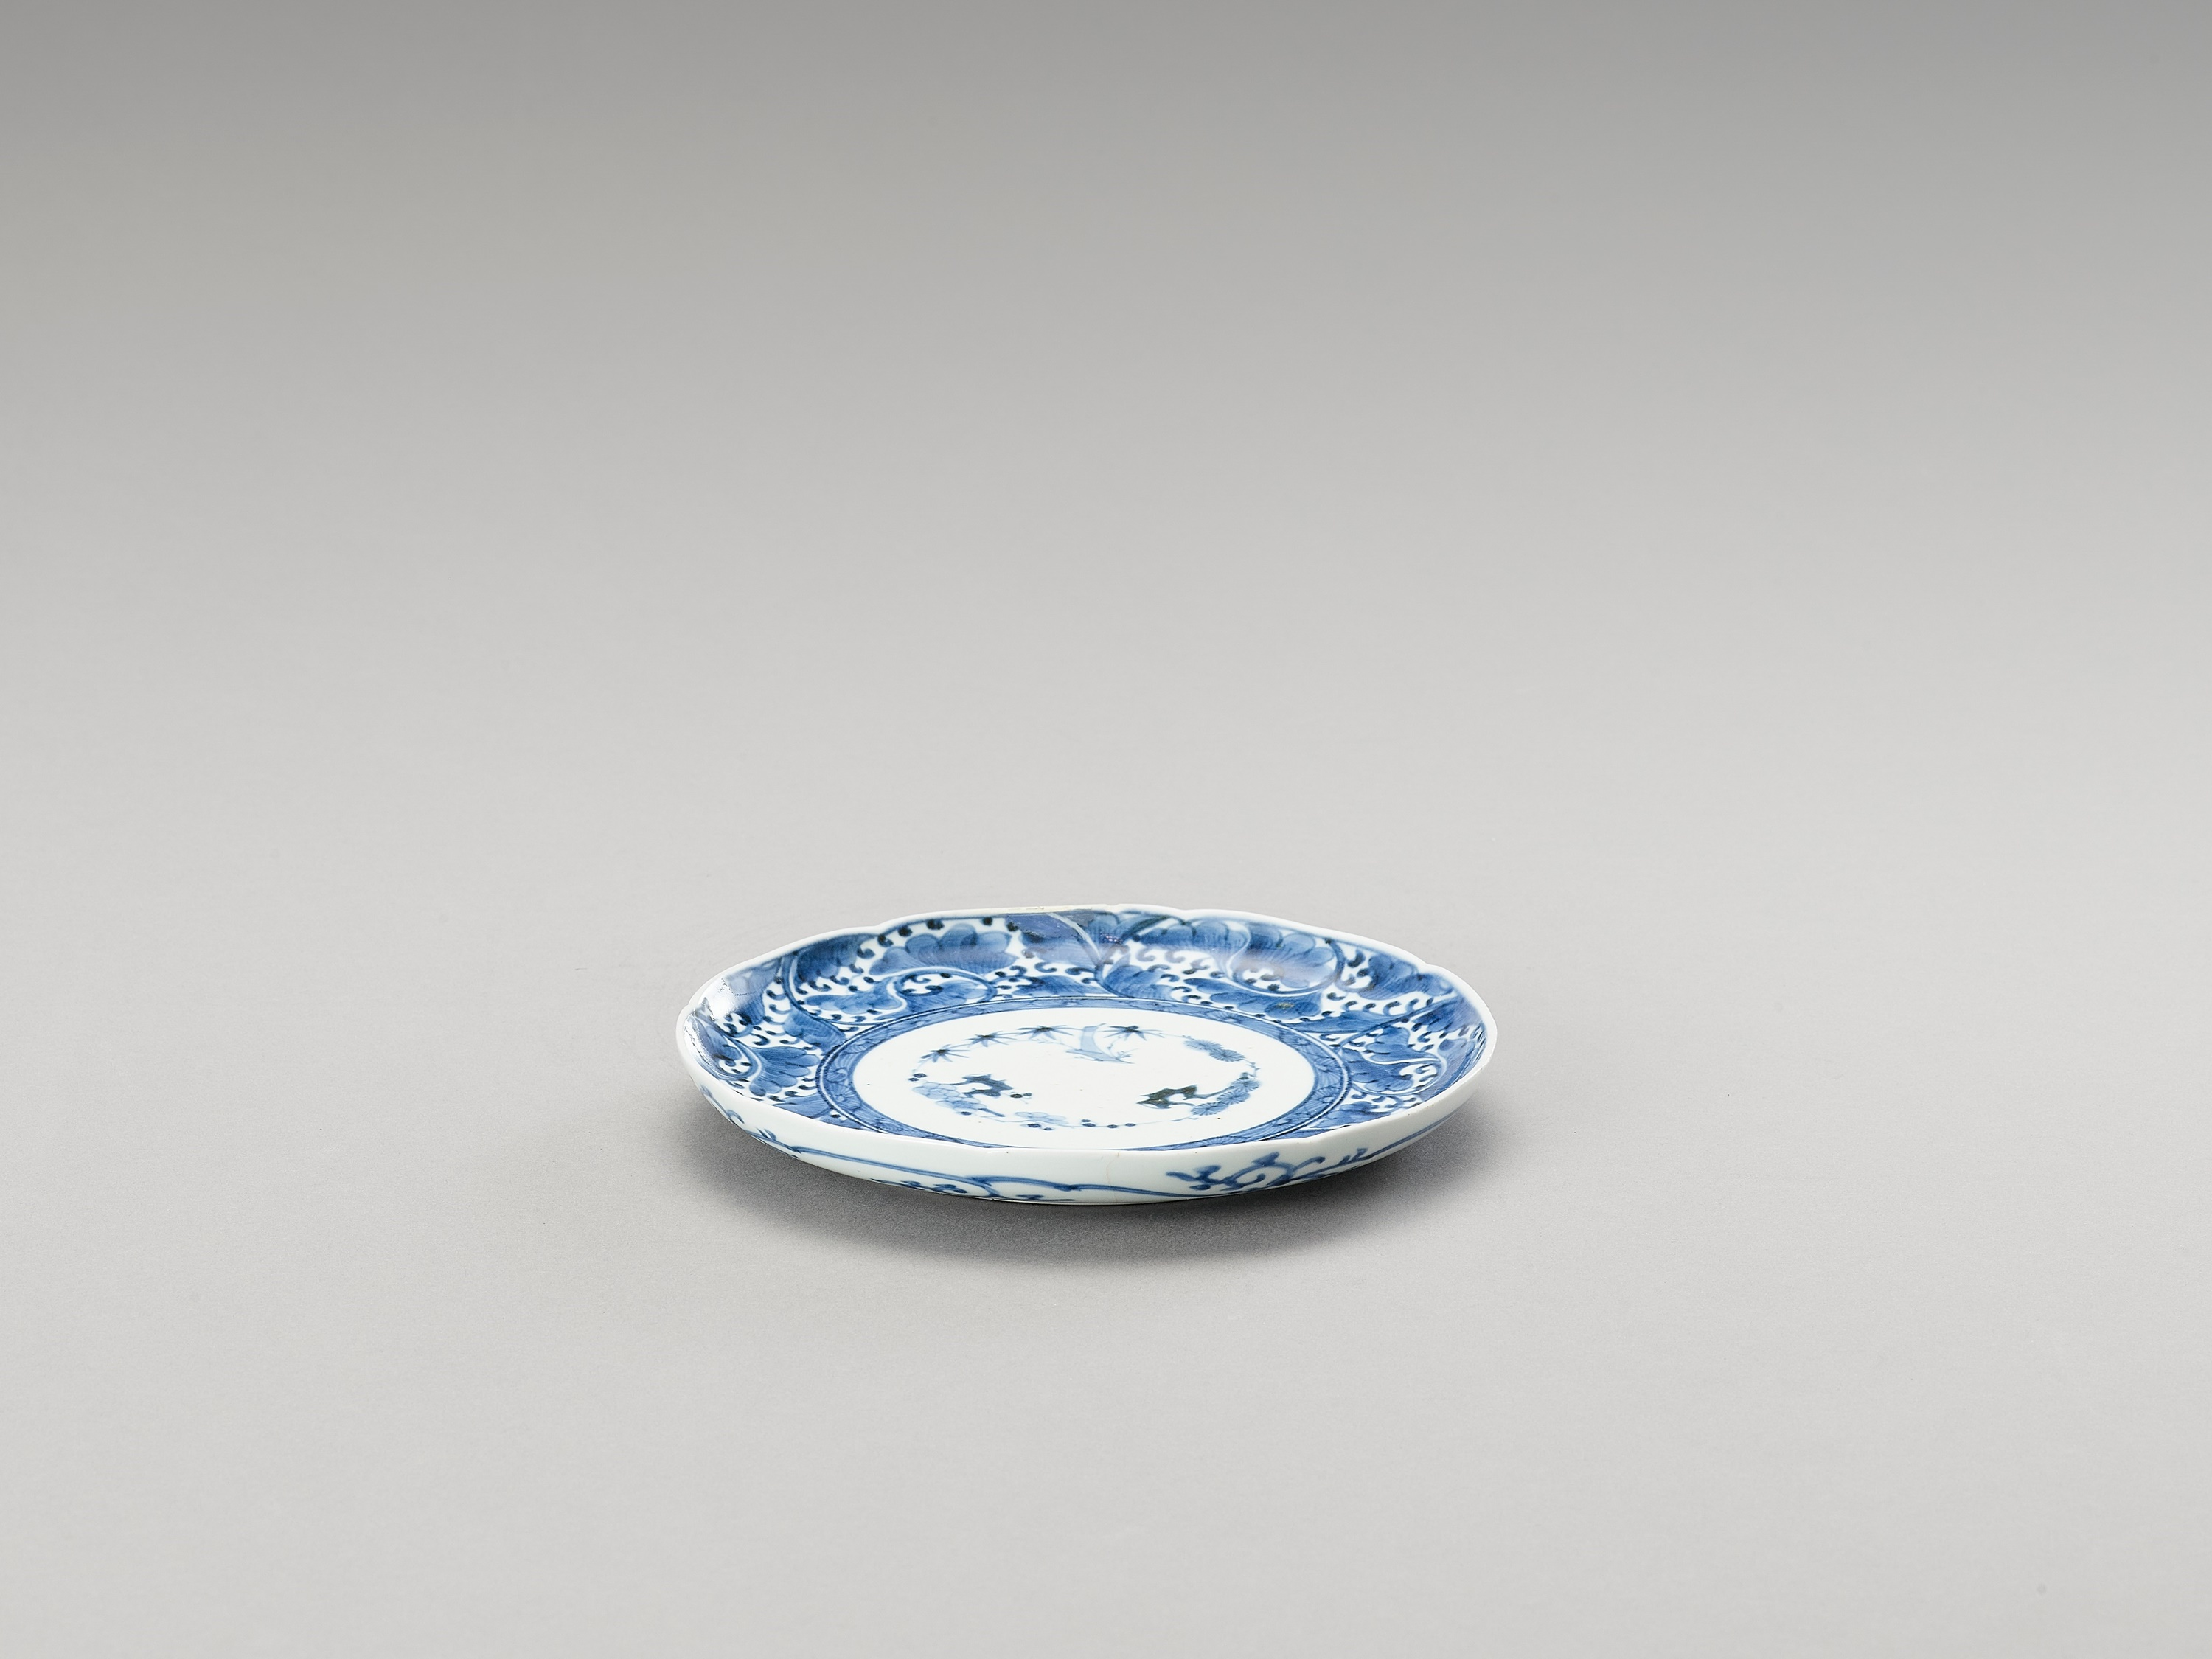 A BLUE AND WHITE ARITA PORCELAIN 'FLORAL' DISH - Image 4 of 4